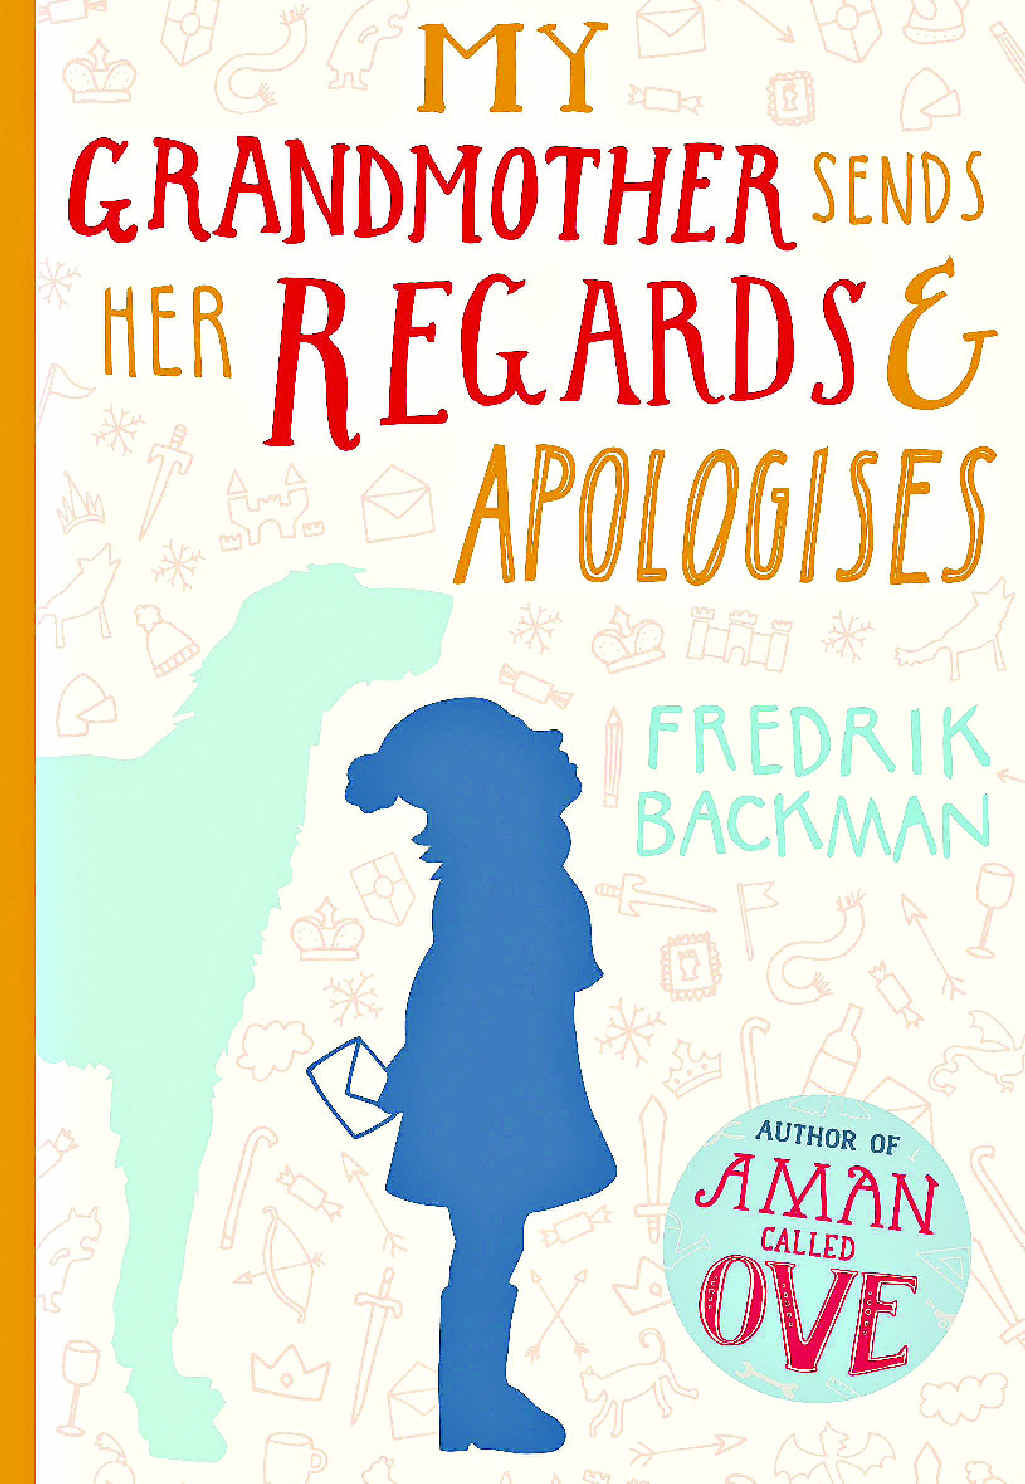 My Grandmother Sends Her Regards and Apologises by Fredrik Backman. Publisher: Hachette Australia. RRP: Paperback $29.99. Available as e-book.